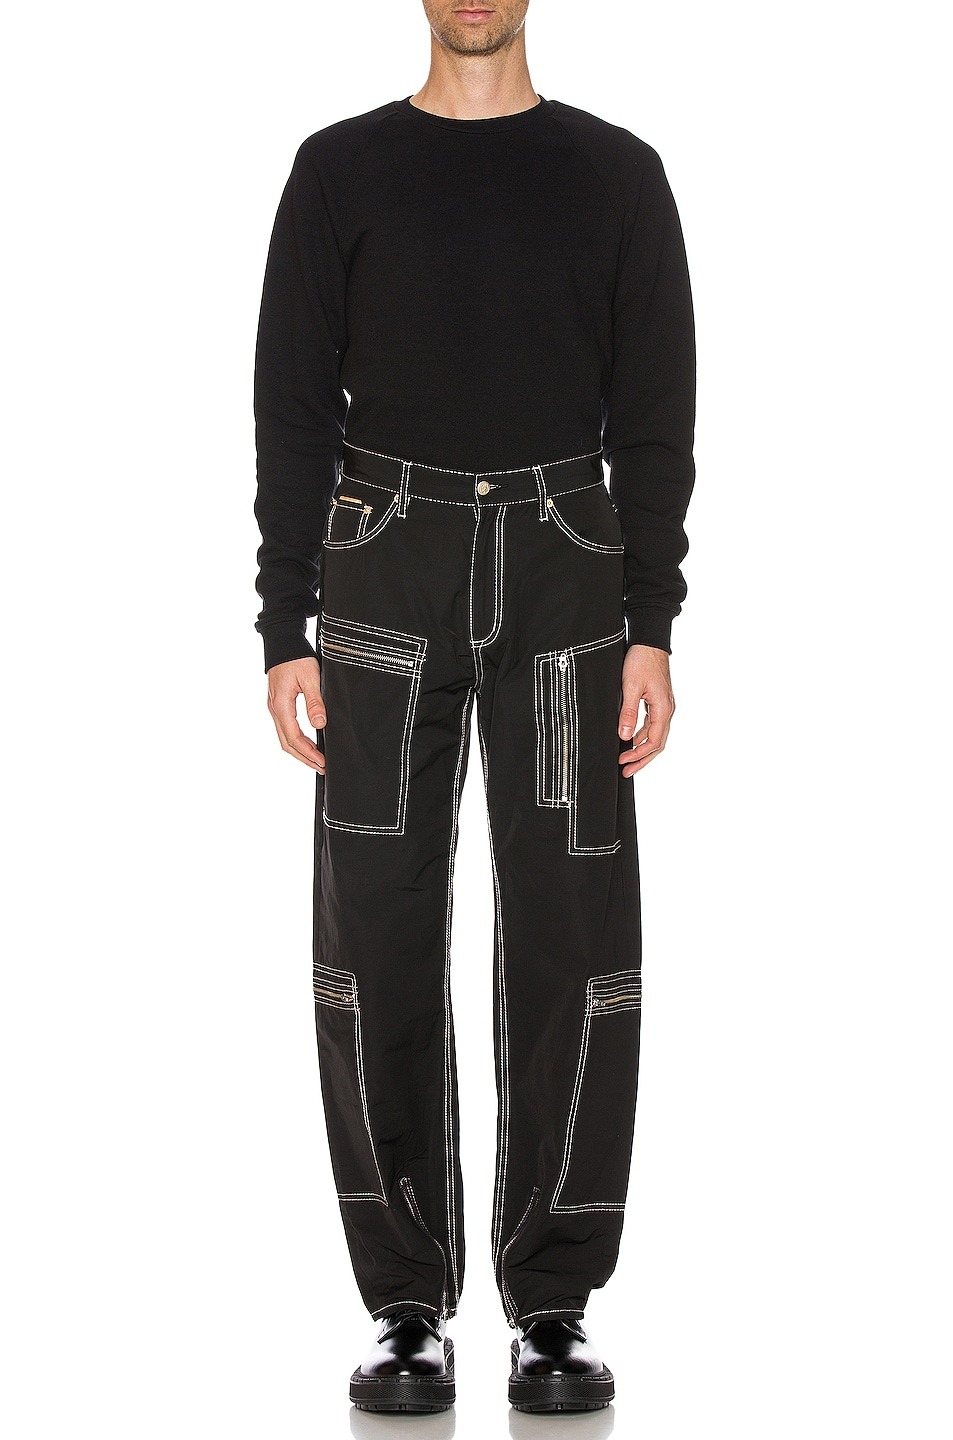 Image 5 of Eytys Benz MK Tech Pant in Black